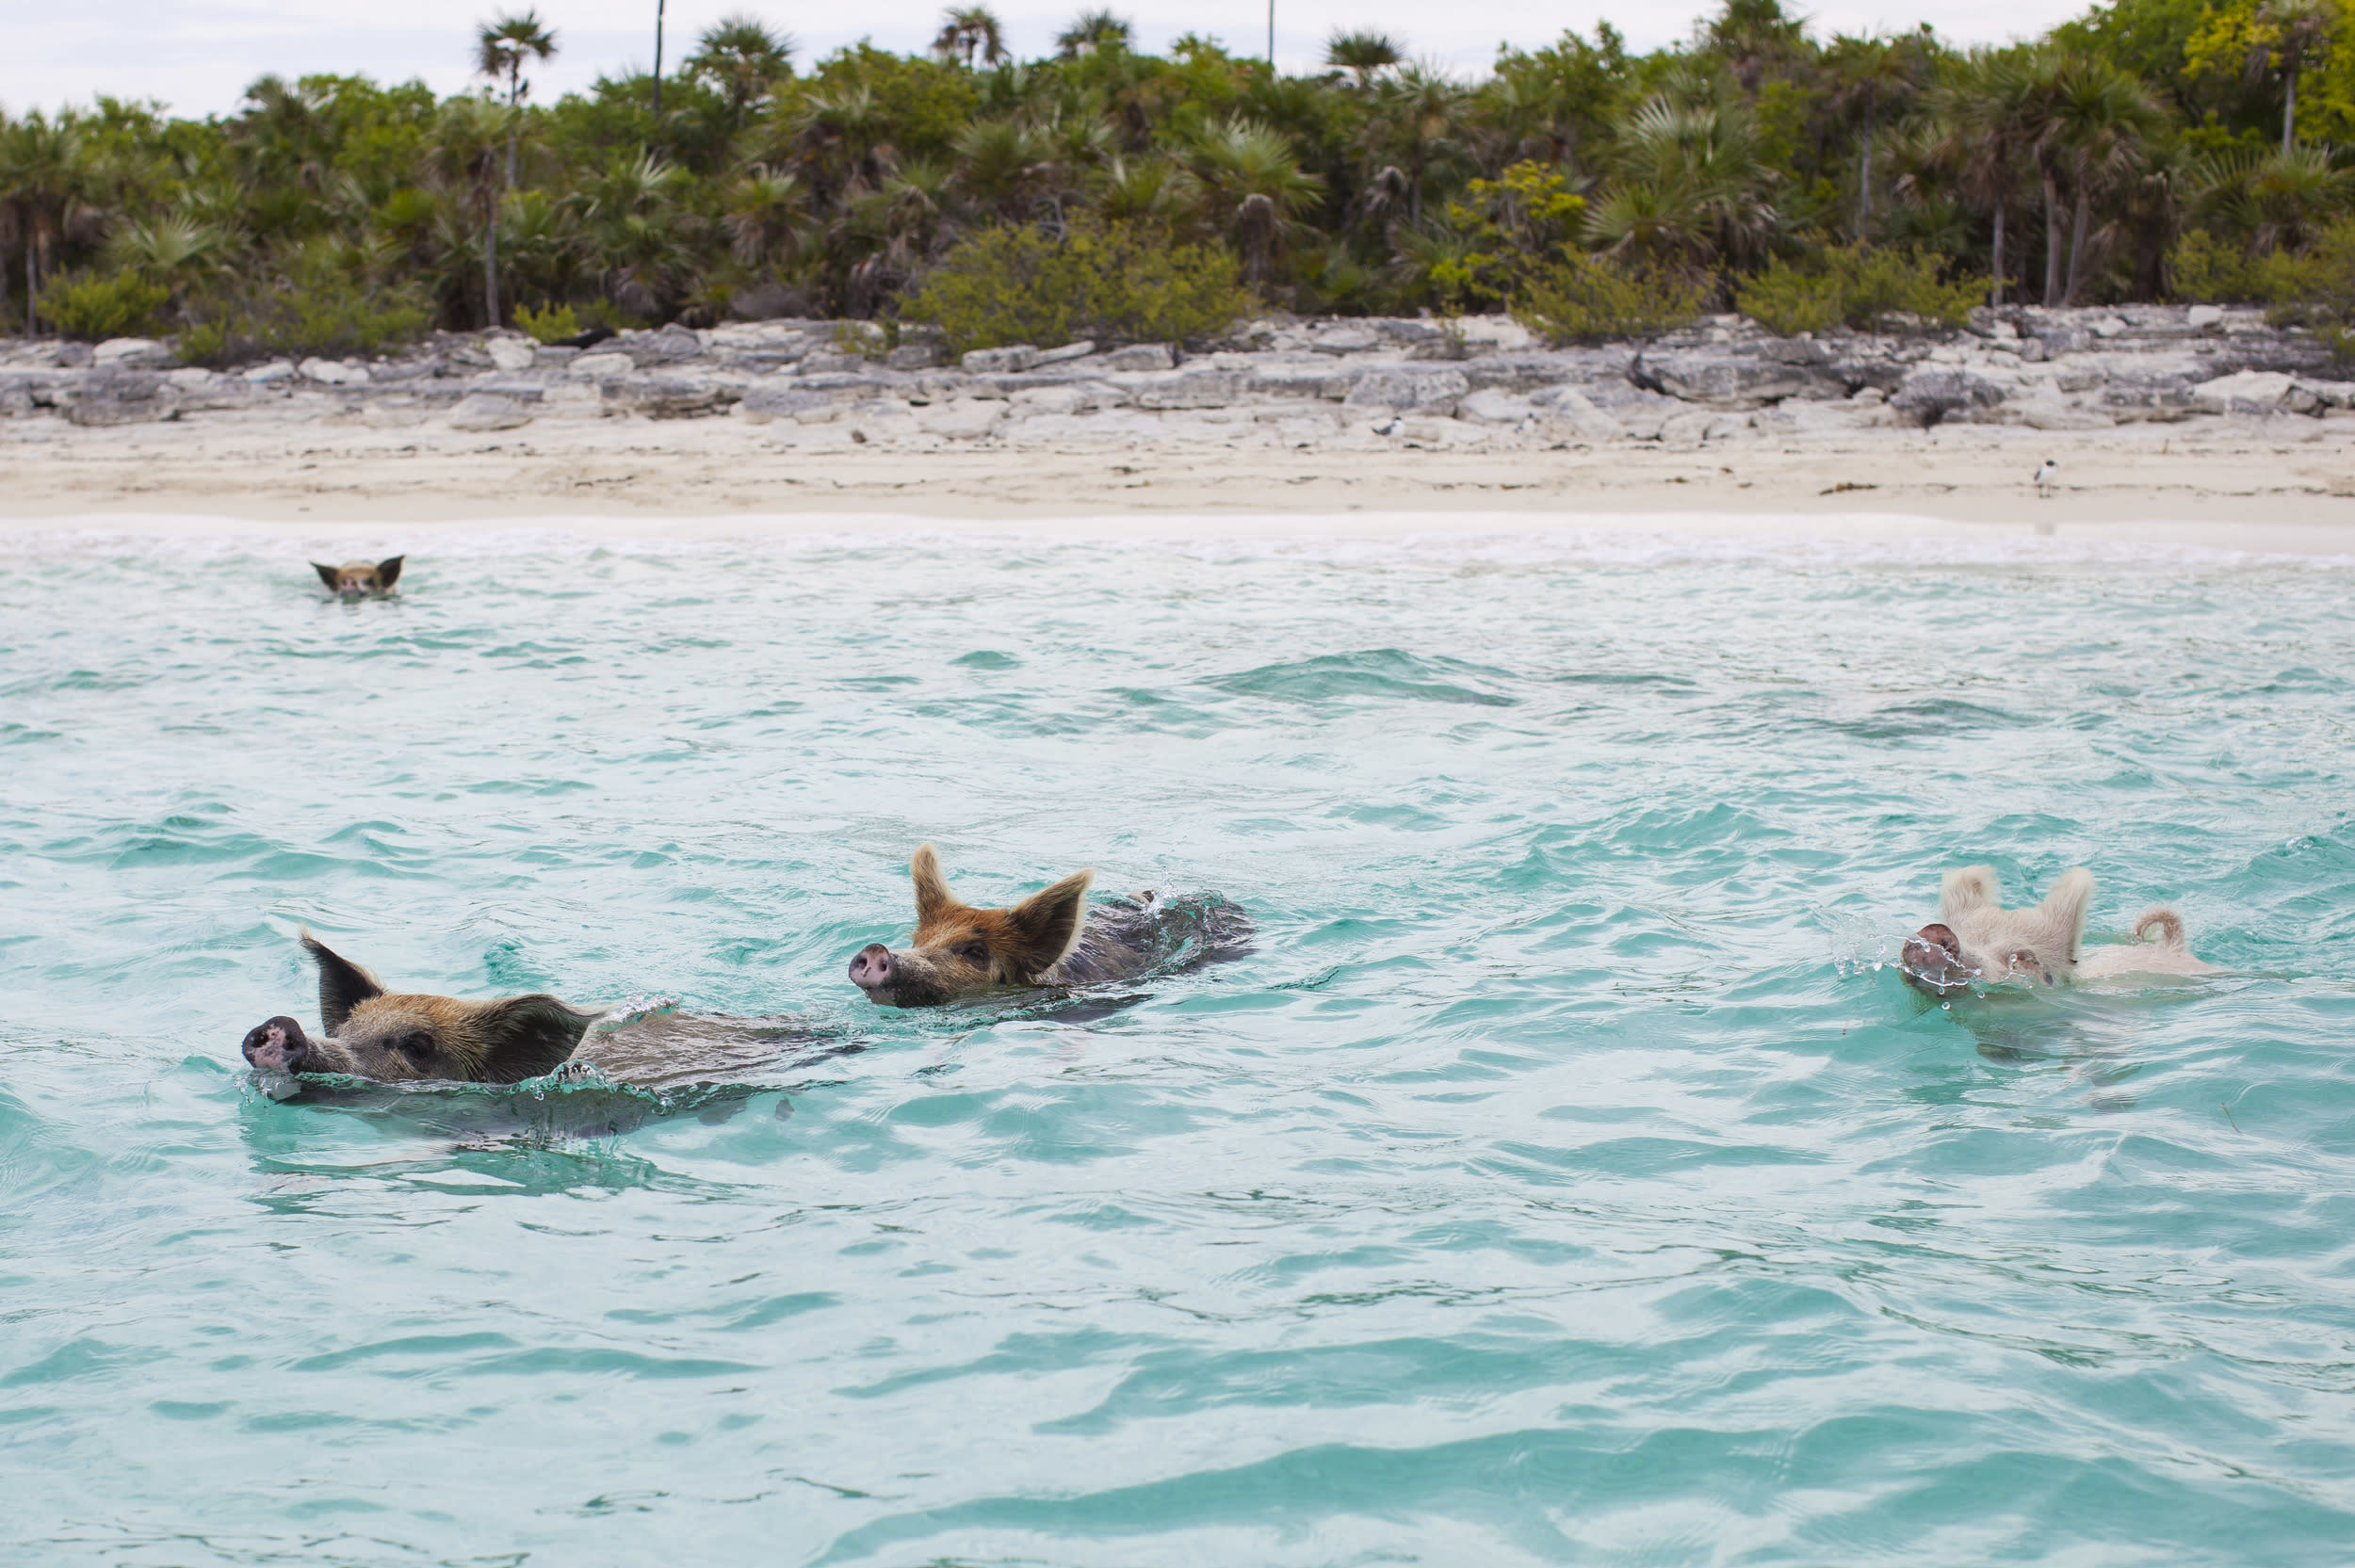 Pig Beach, or Pig Island, is an uninhabited island in Exuma, the Bahamas, famed for its many swimming pigs. They are said to have been dropped off on the island by sailors who wanted to return to cook and eat them, but never returned. Others say the pigs survived a shipwreck and managed to swim to the island. Today, the pigs are fed by tourists who visit the island to meet its unexpected residents.